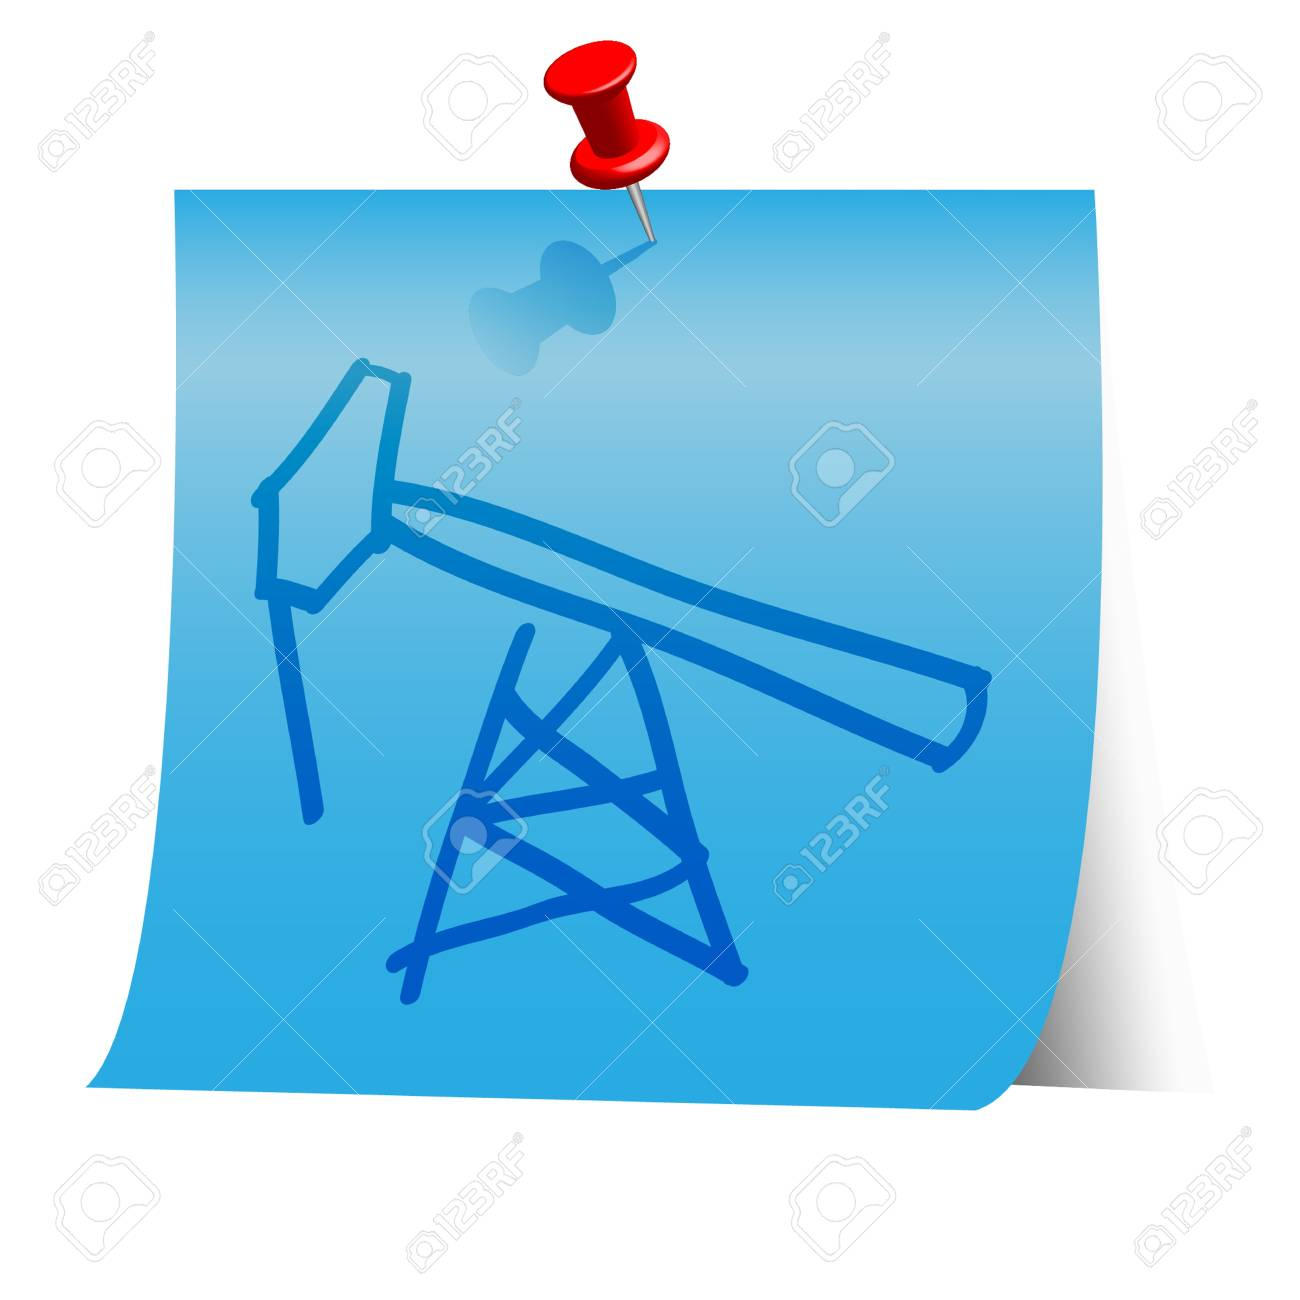 Energy resource icon on blue paper note. Stock Vector - 18139965